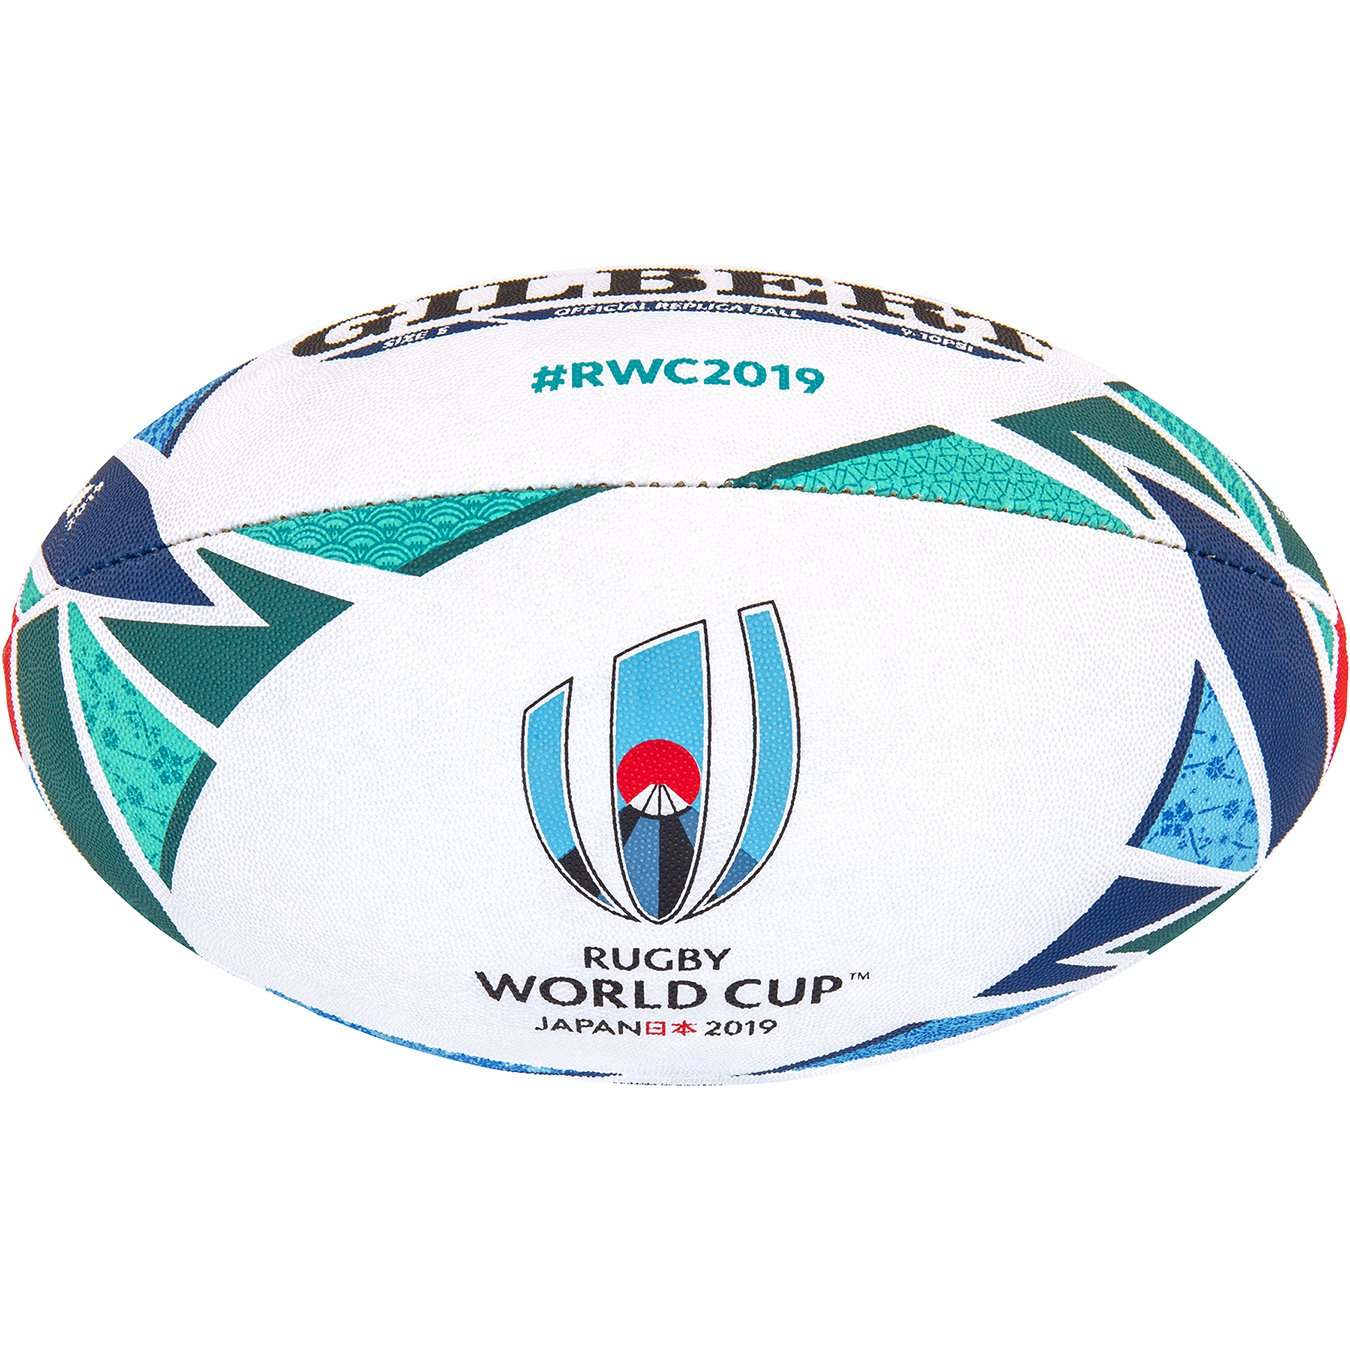 Gilbert 2019 Rugby World Cup Japan - Bola de réplica, Color ...